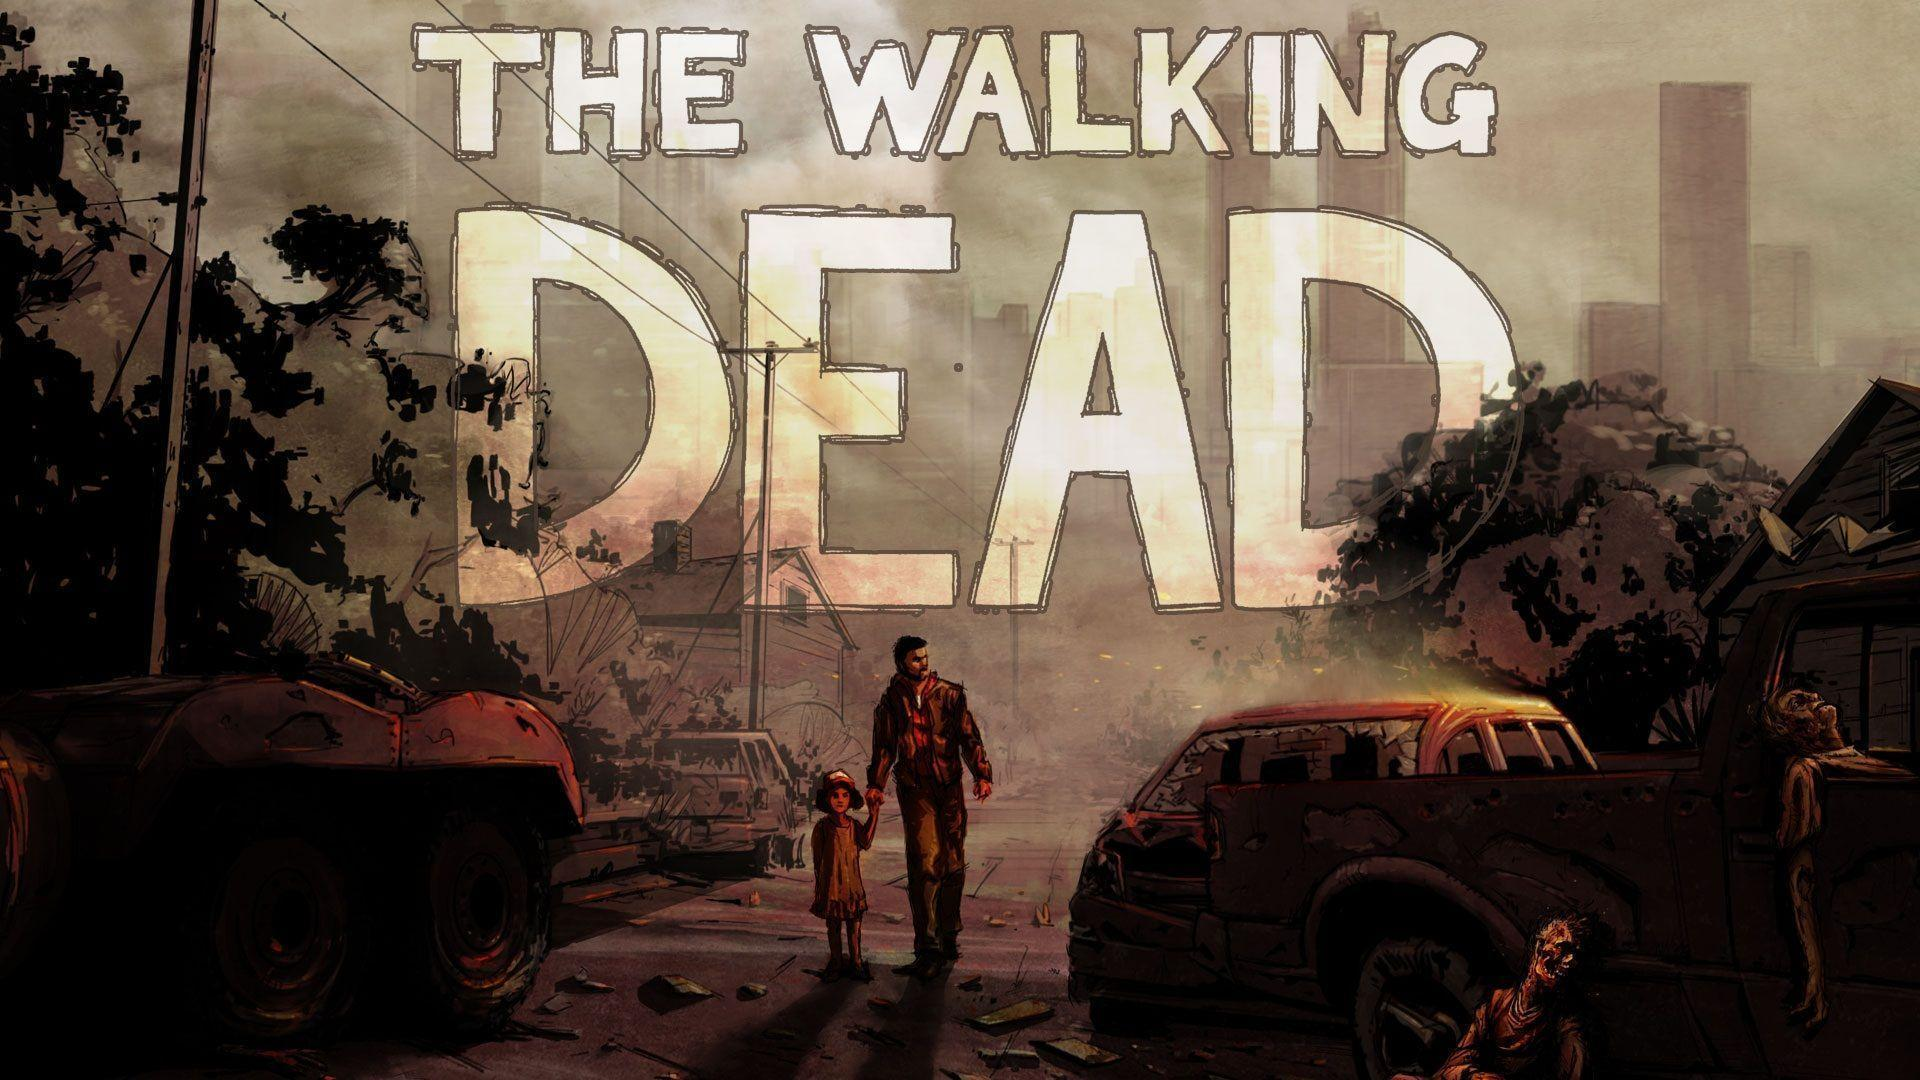 Walking dead season one or two wallpapers : TheWalkingDeadGame